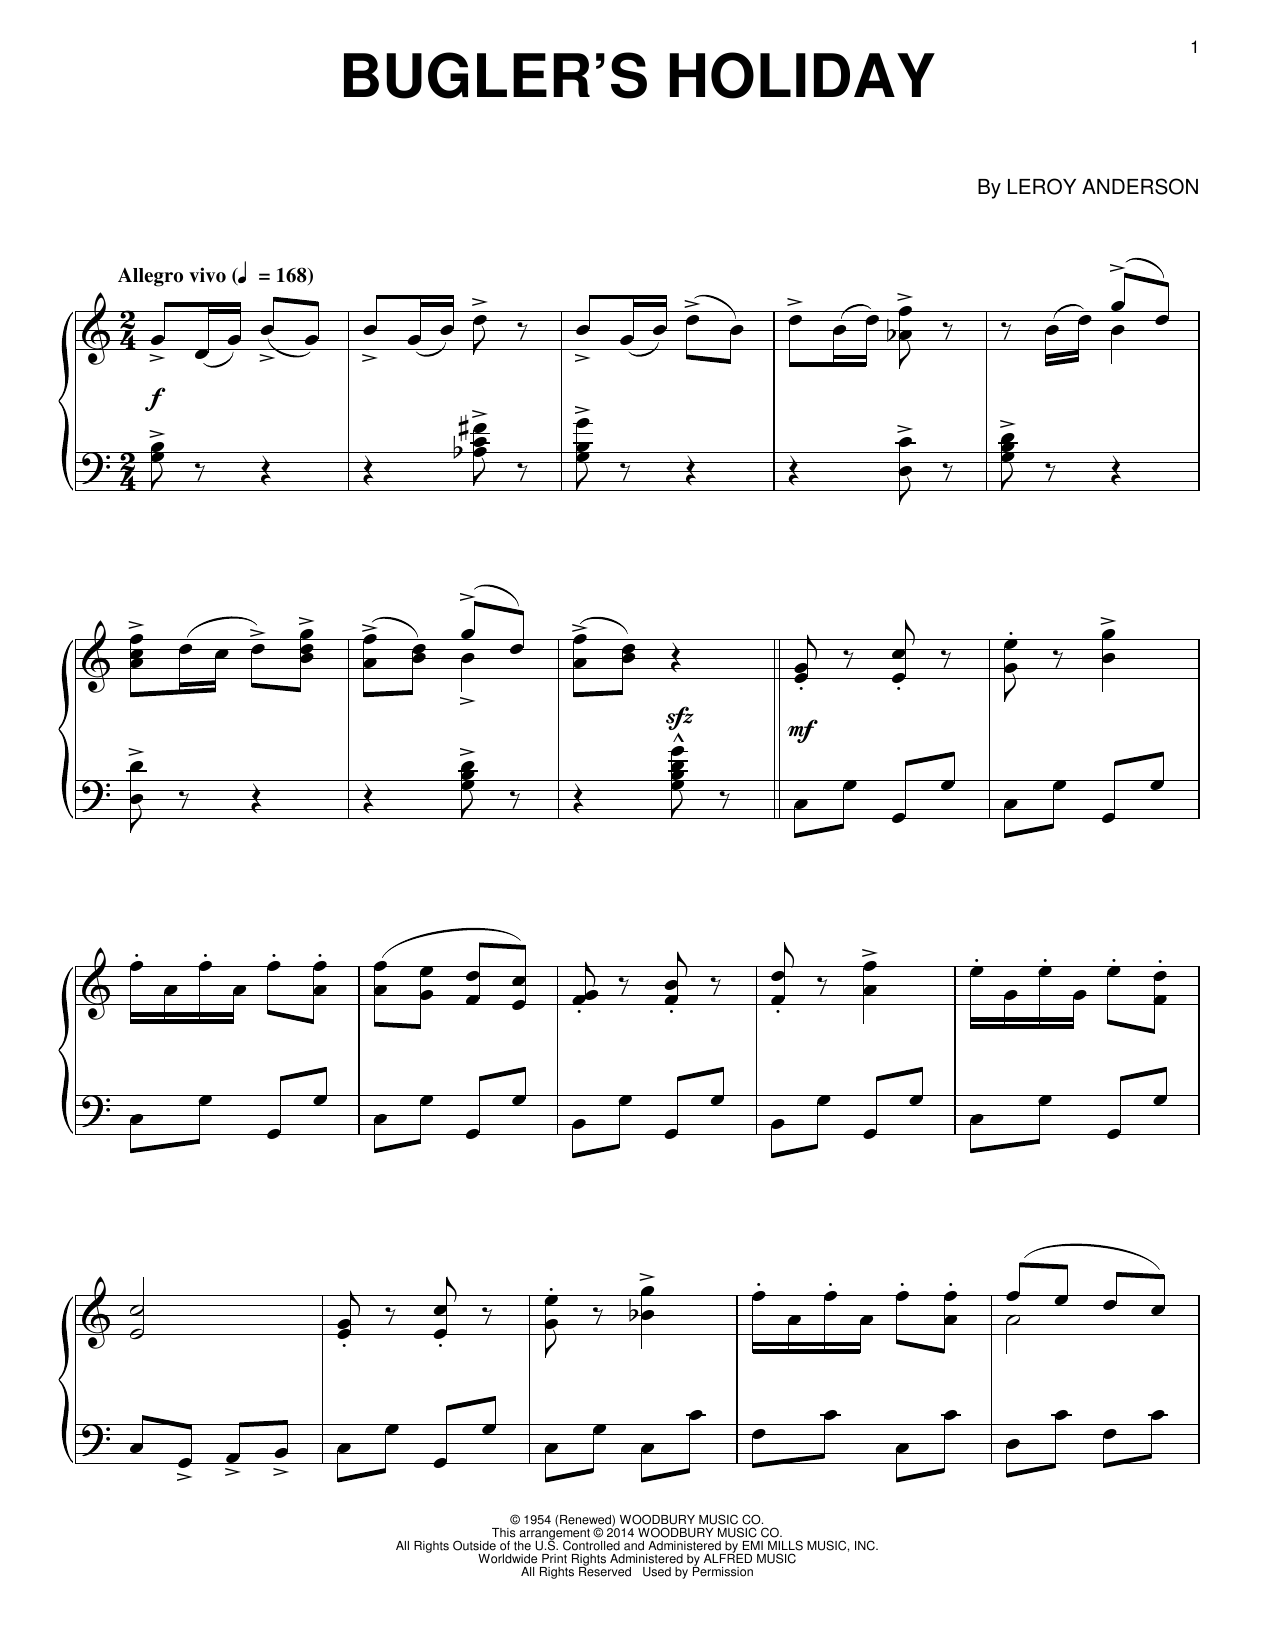 Leroy Anderson Bugler's Holiday sheet music notes and chords. Download Printable PDF.